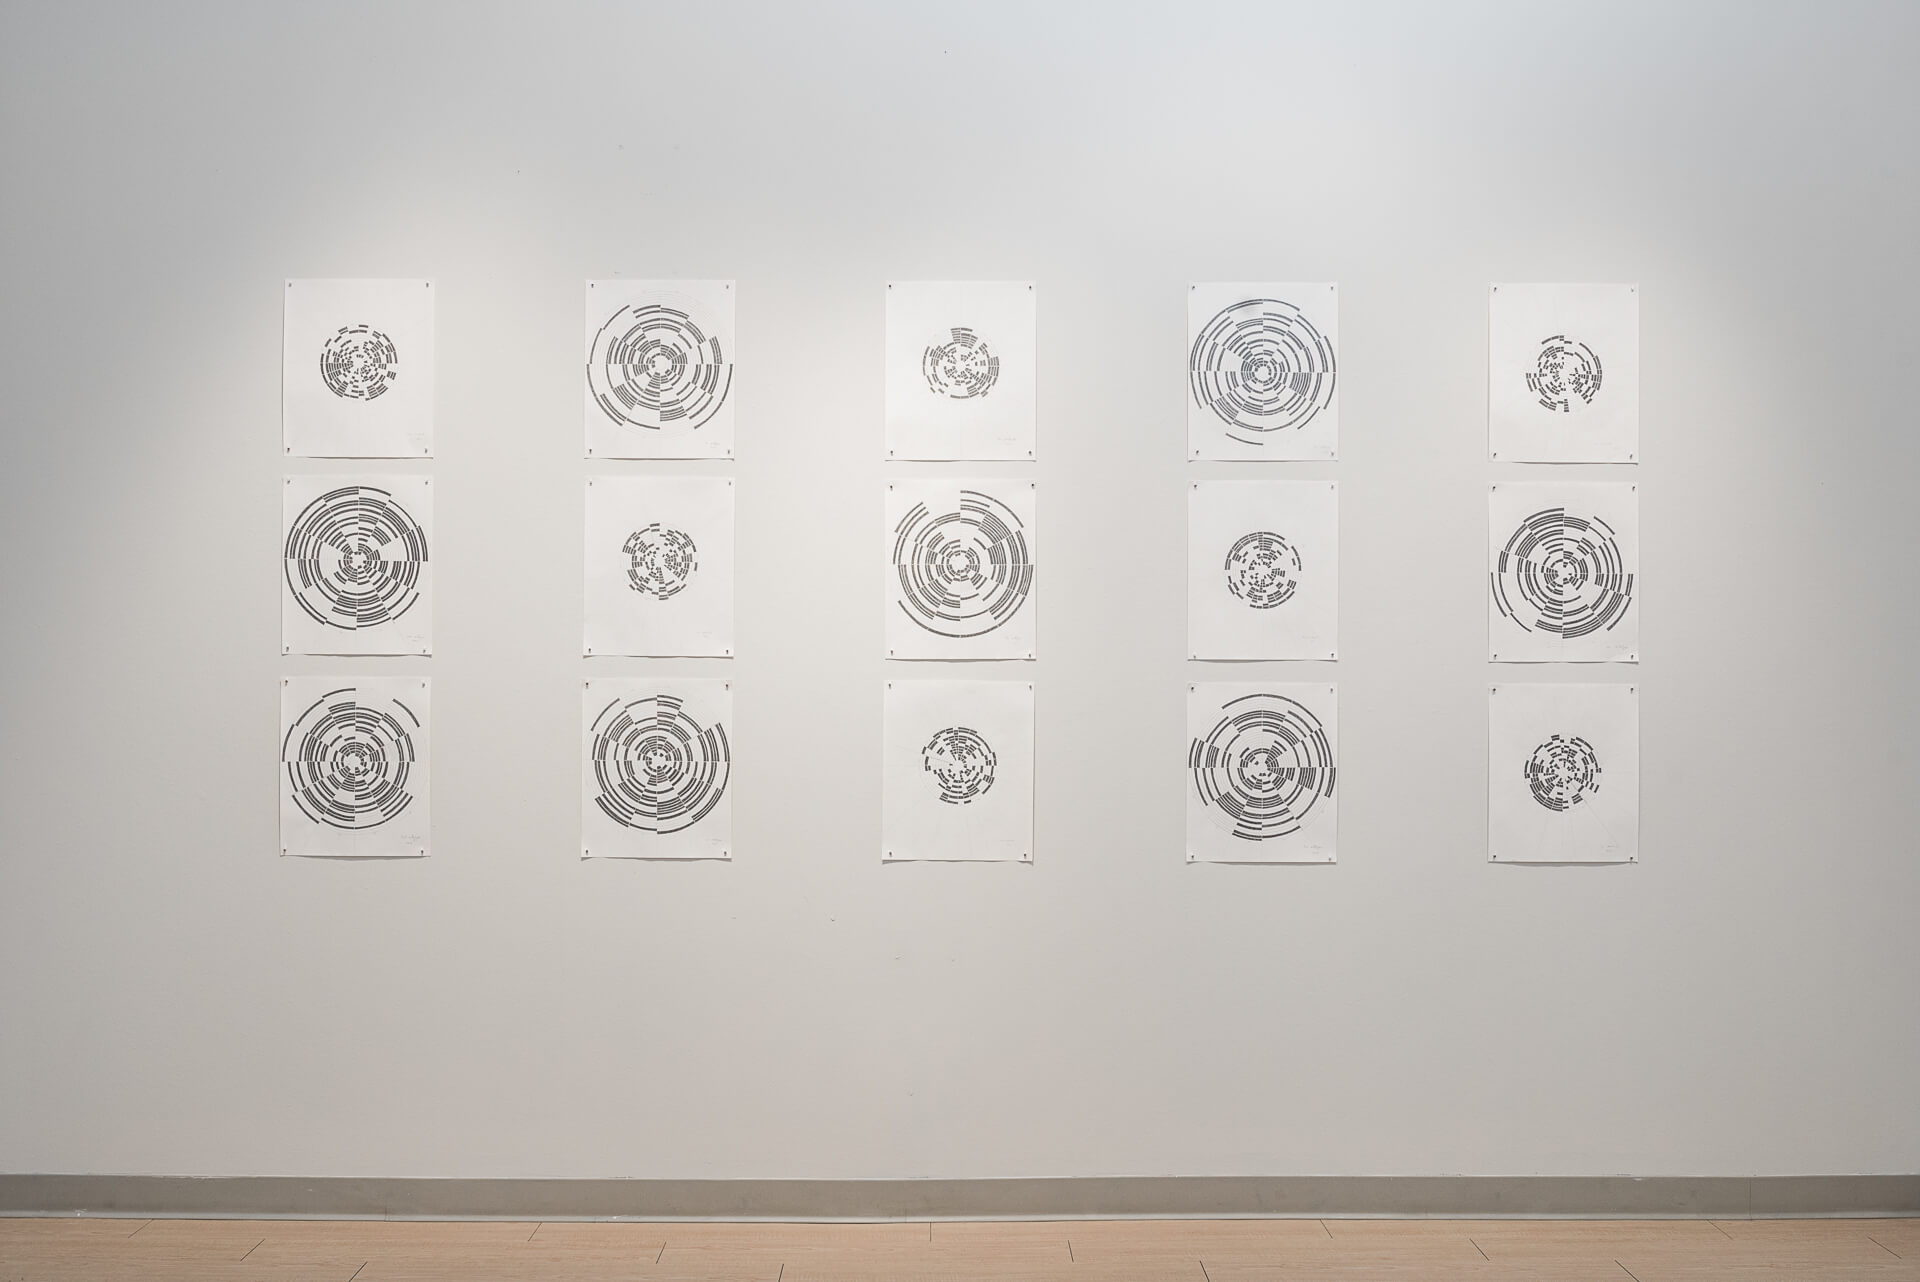 More Time Installation View | Graphite on paper, 24 x 18 inches